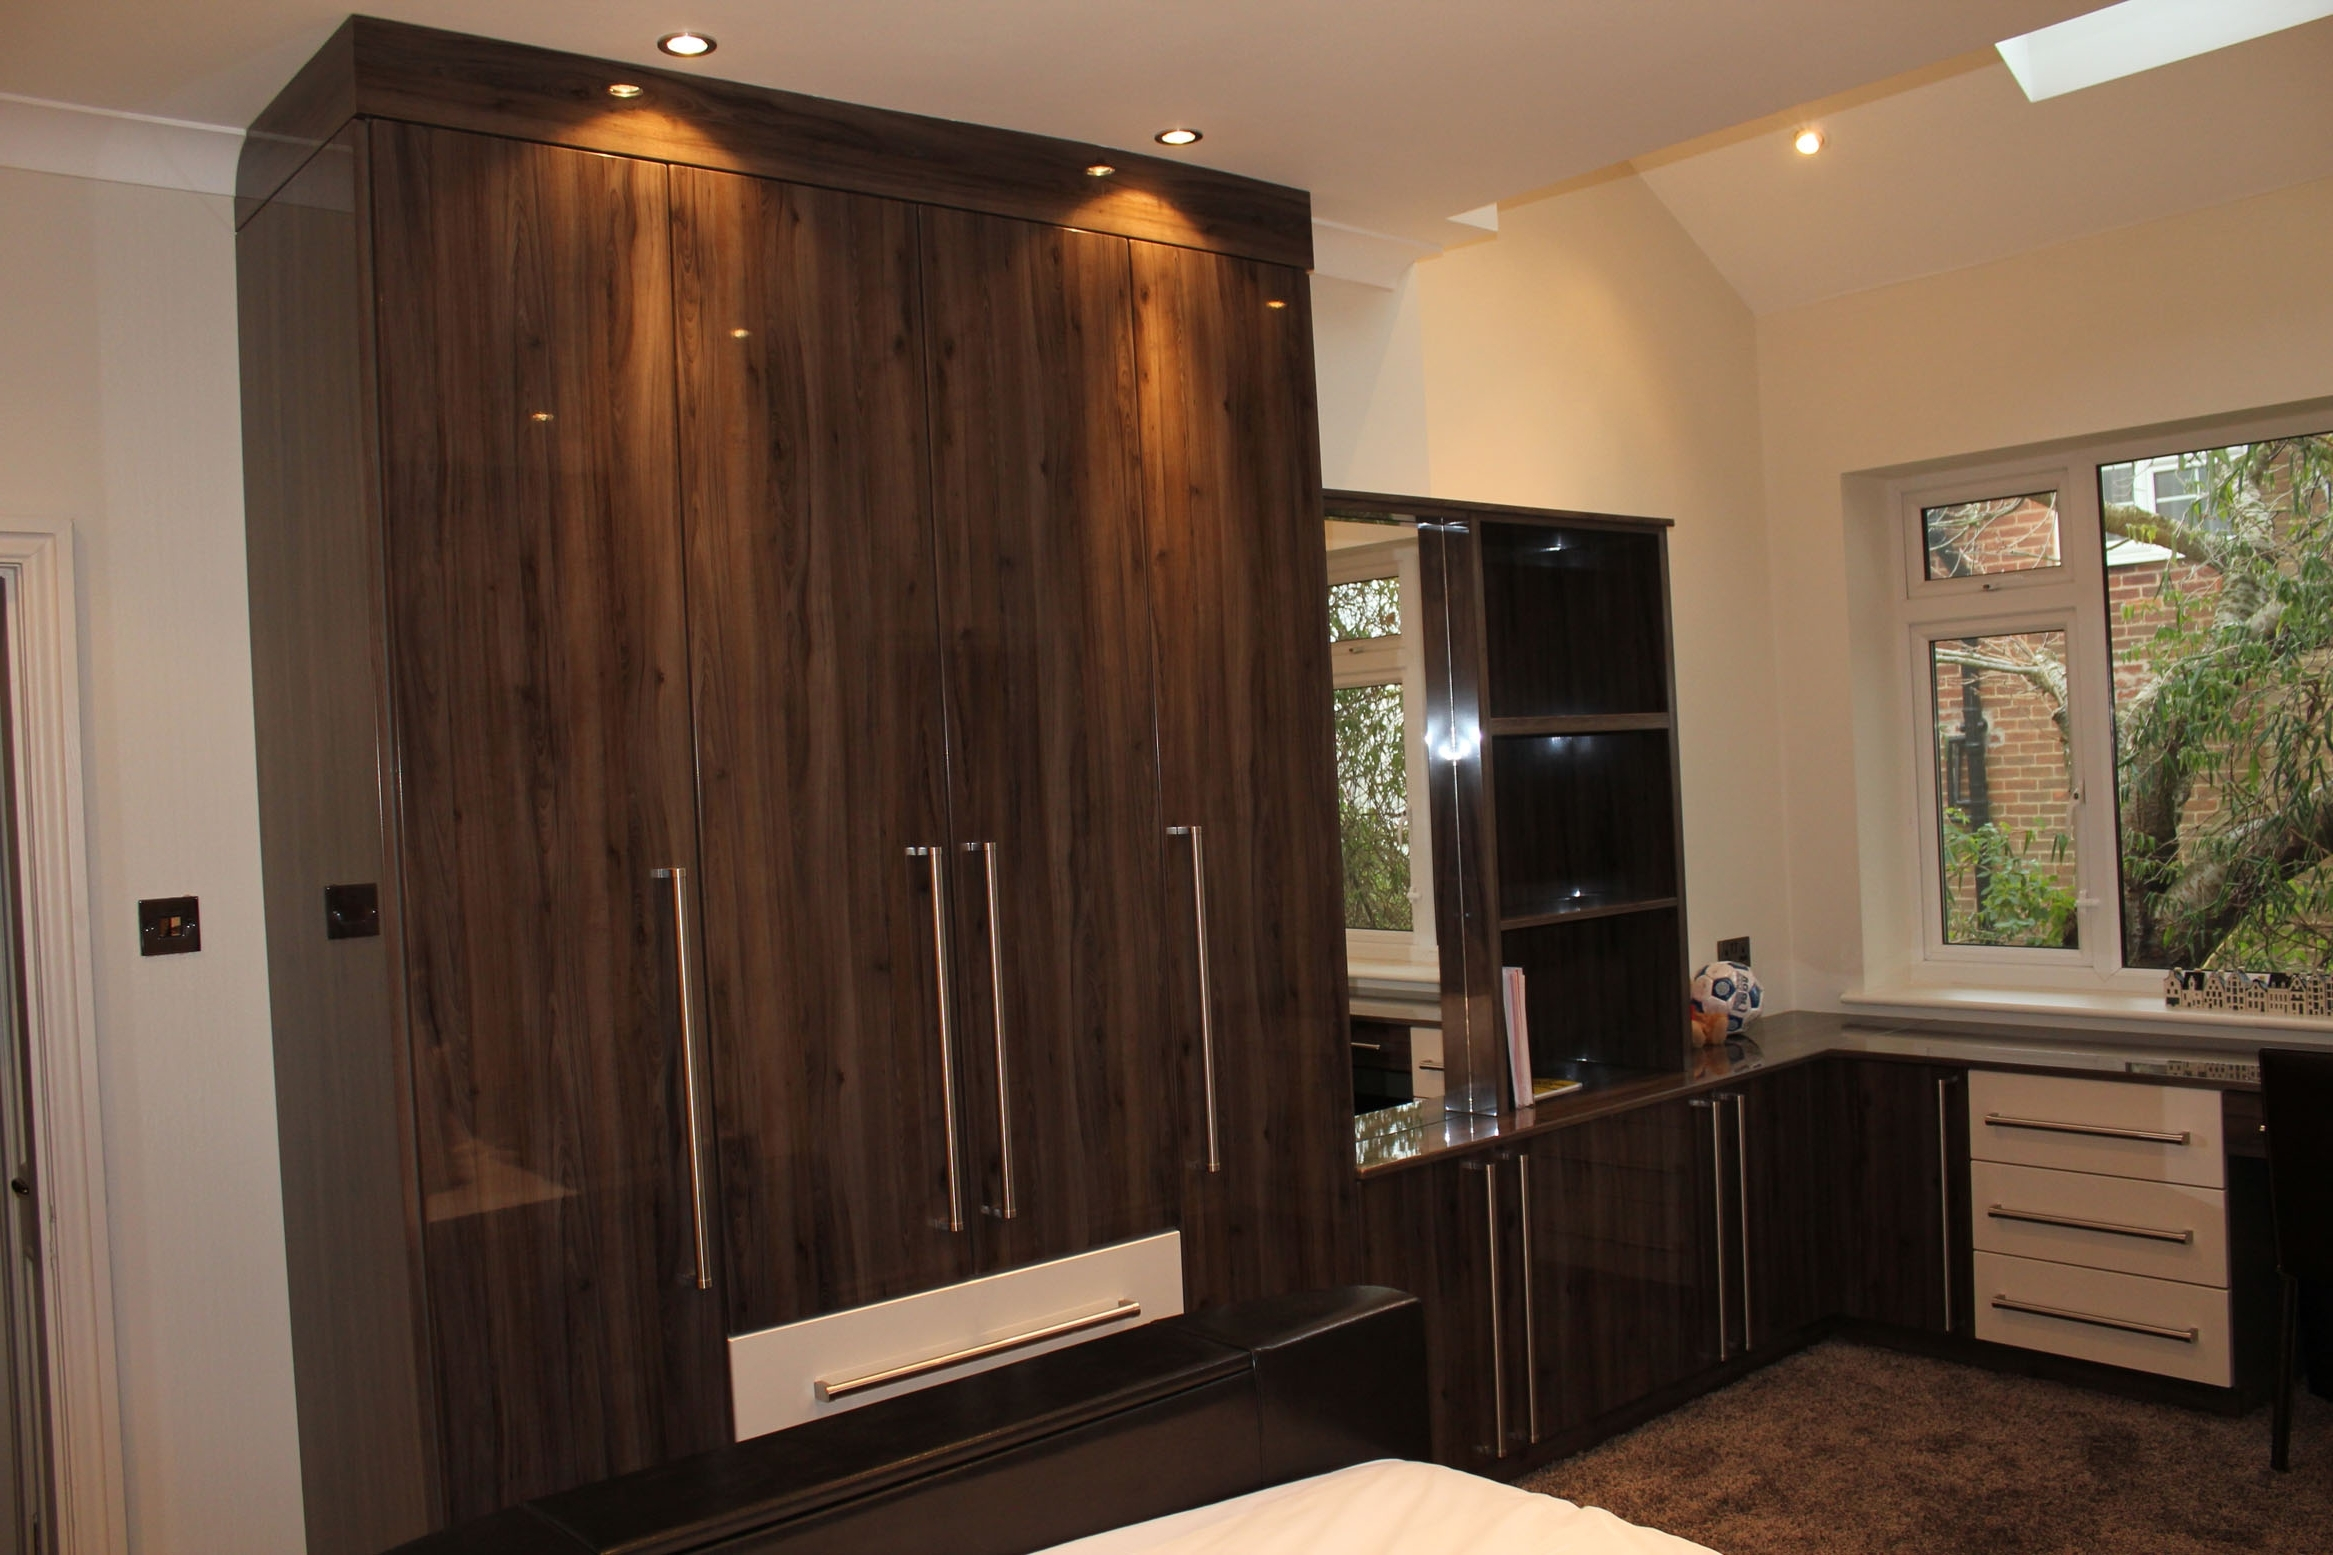 Fitted Cabinets Intended For Well Liked Bedroom: Fitted Bedrooms Wardrobe Wooden Cabinets Mirror Window (View 4 of 15)